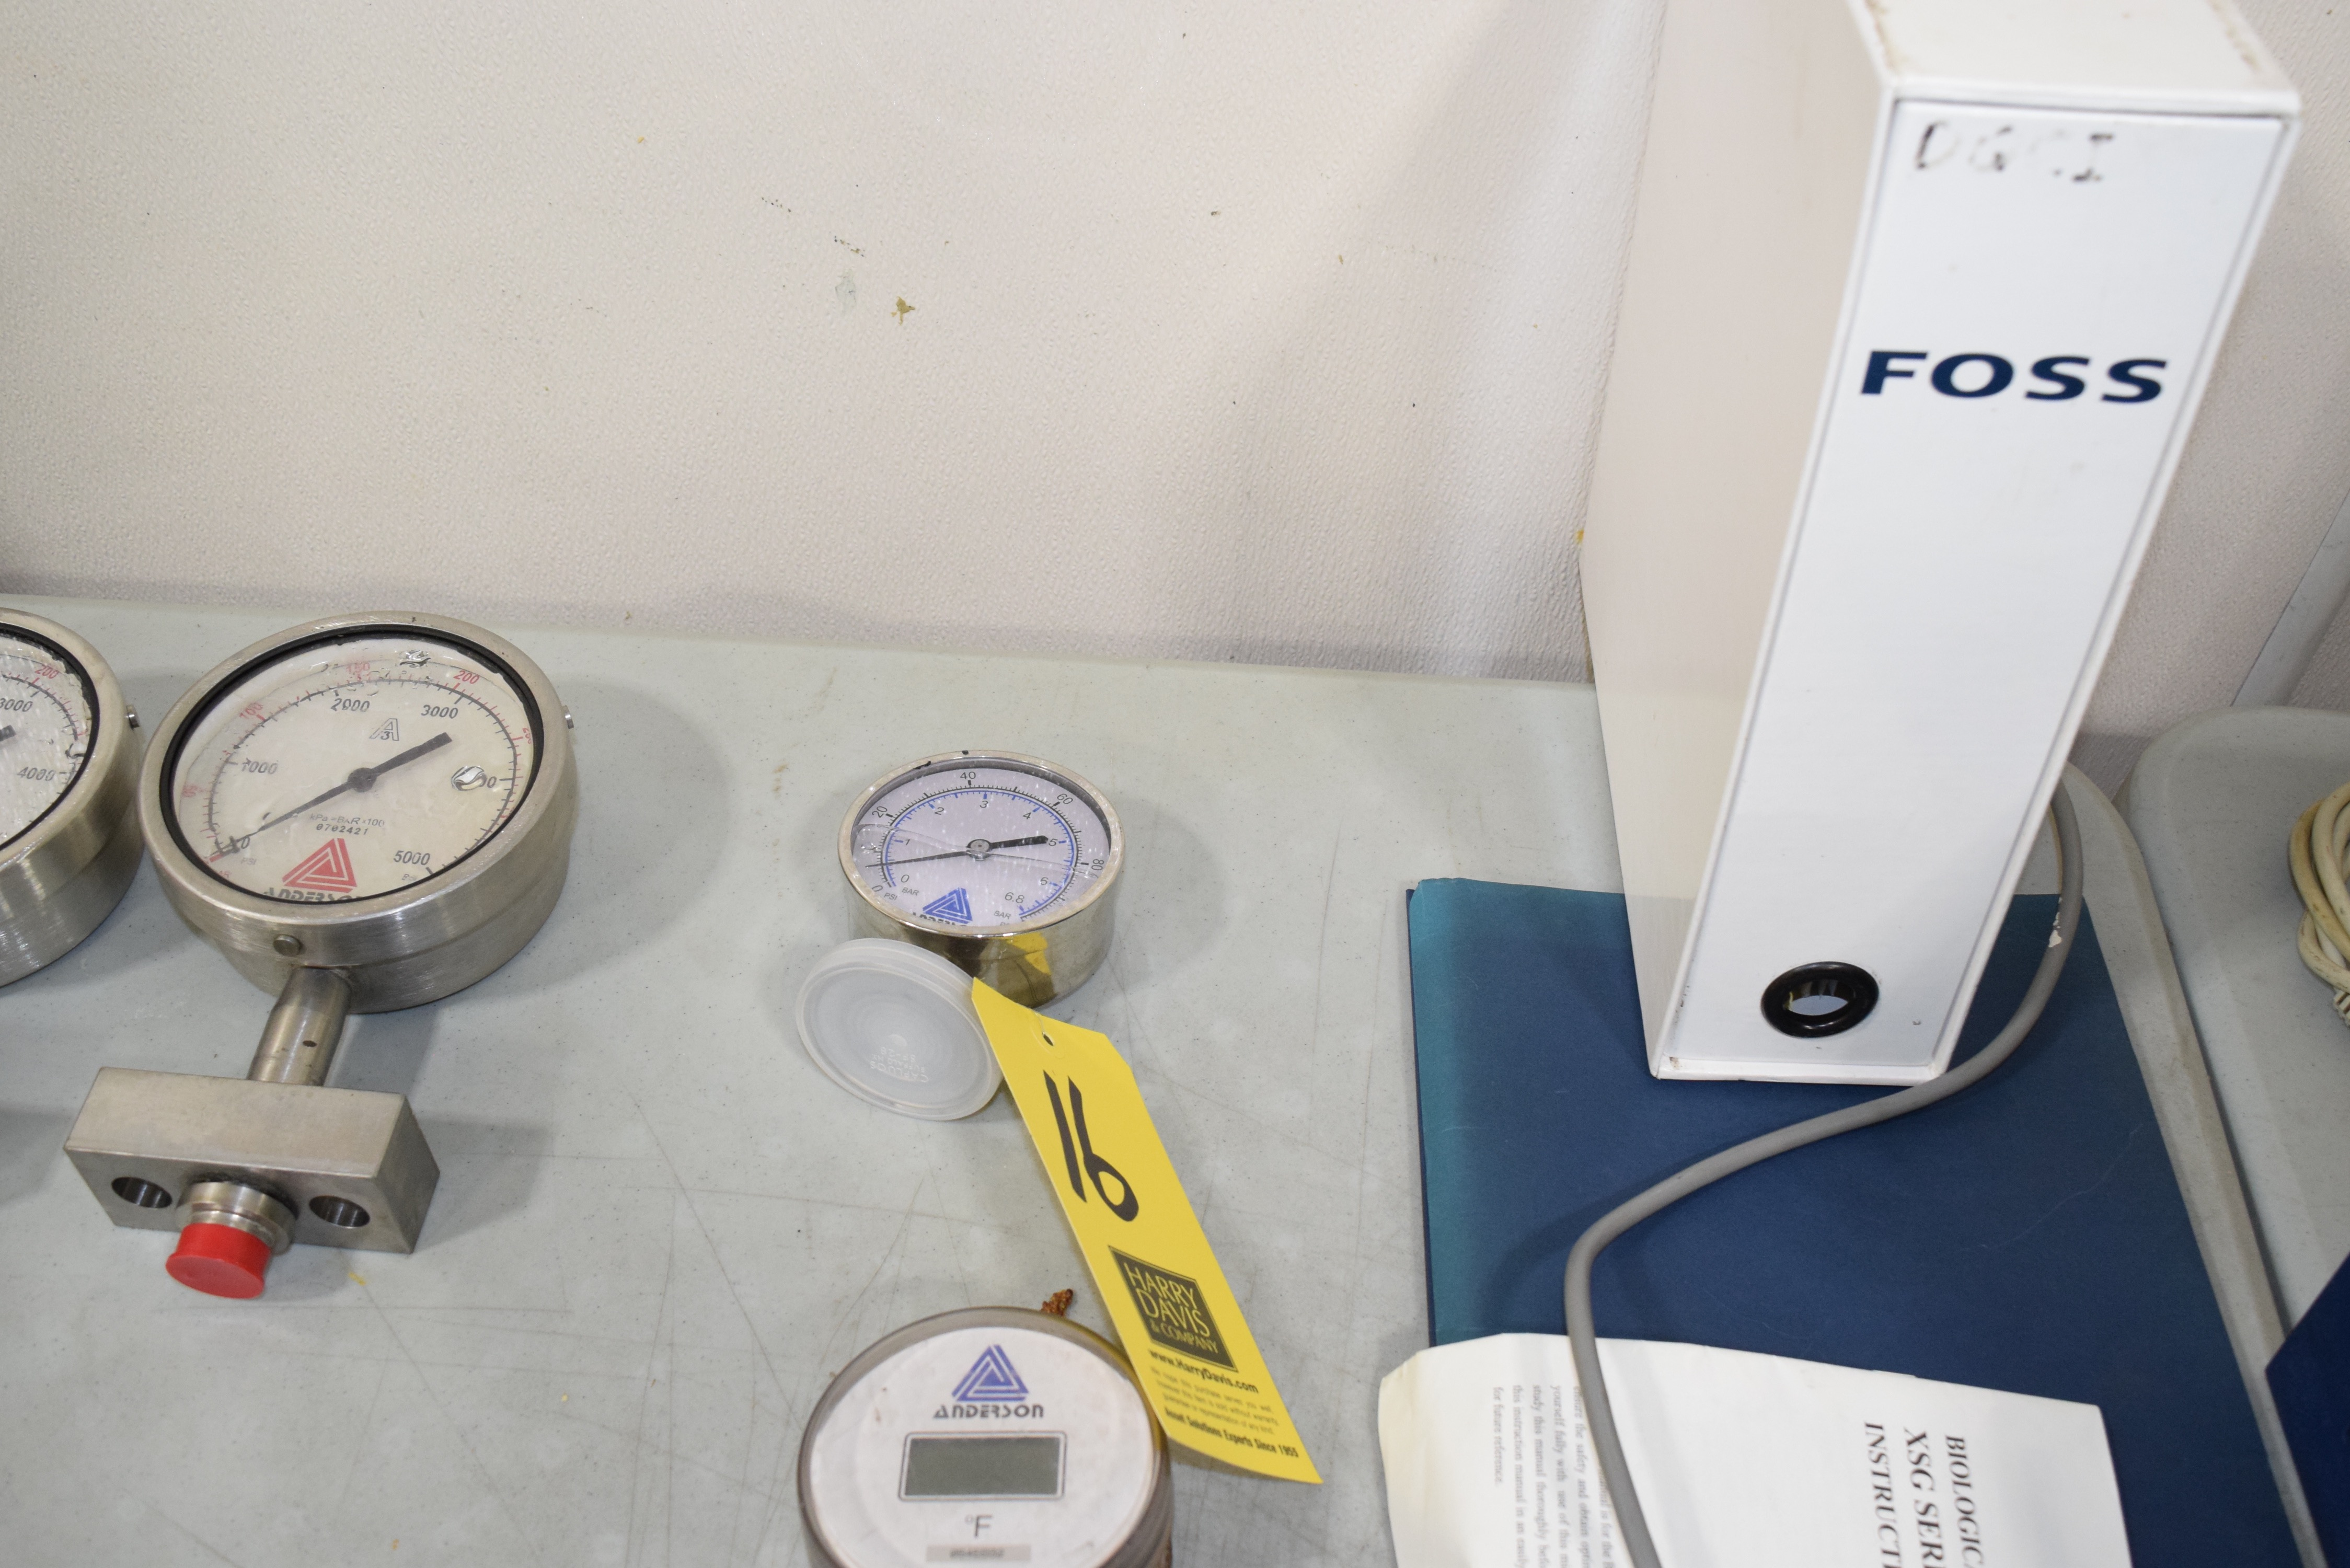 Lot 16 - NEW Anderson S/S Pressure Gauge**Rigging Fee $25